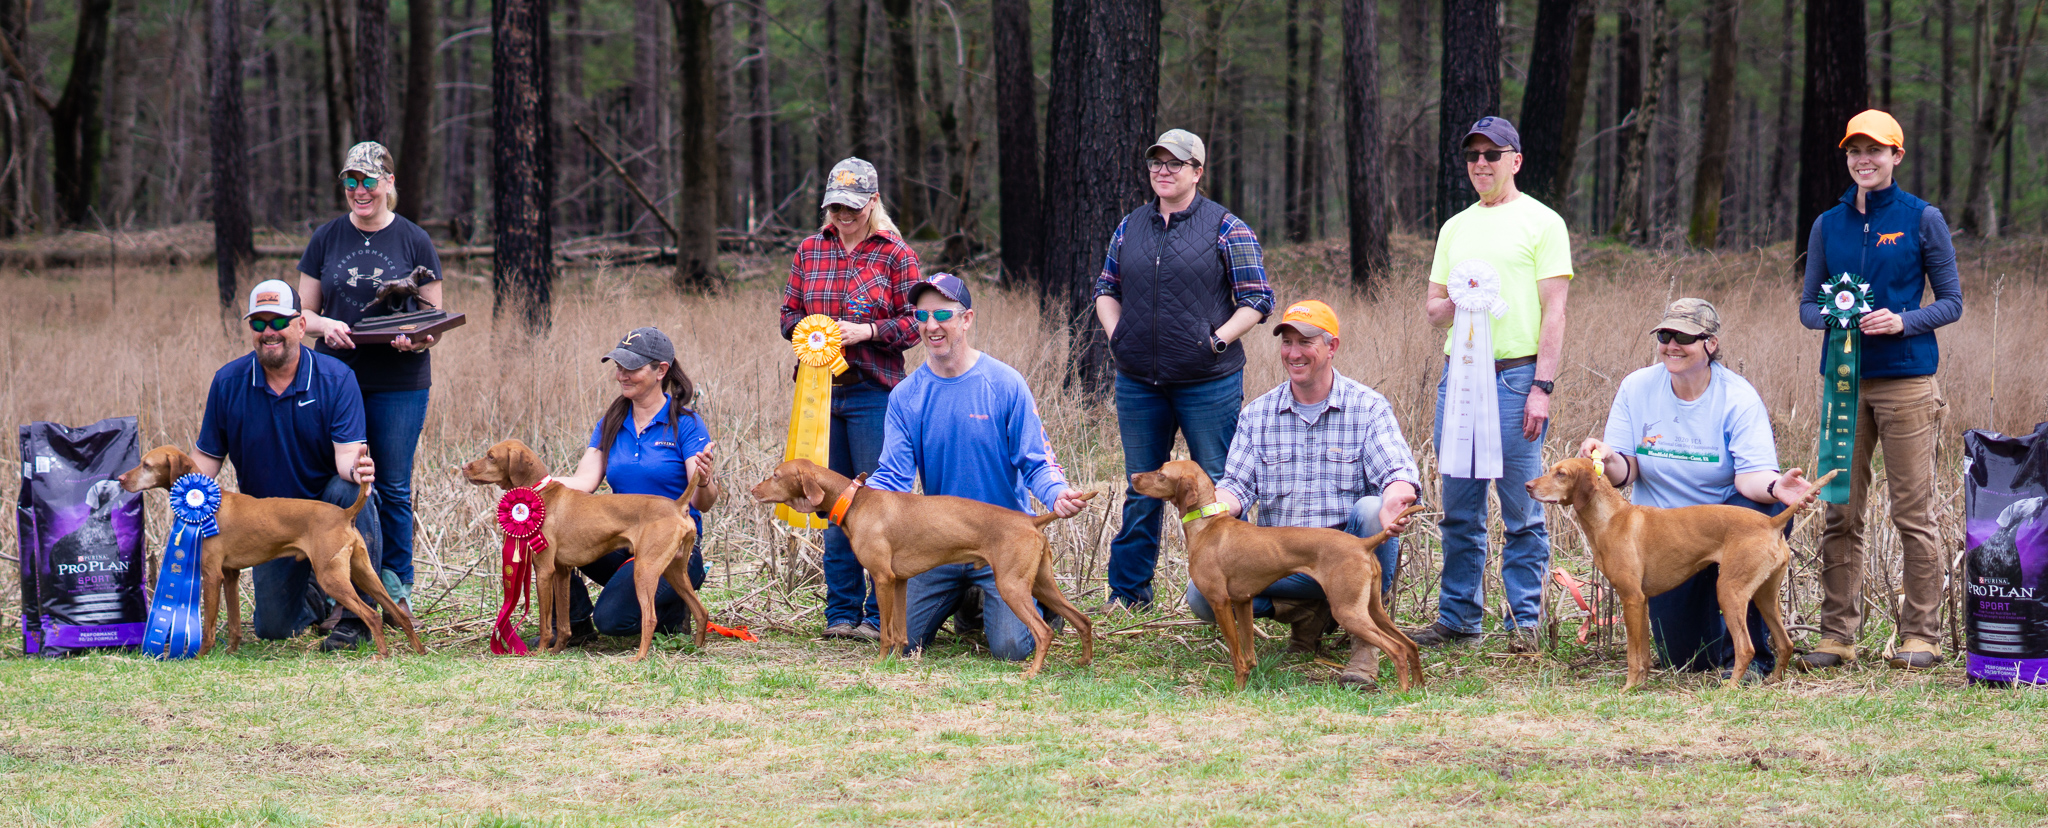 The line-up of placed dogs